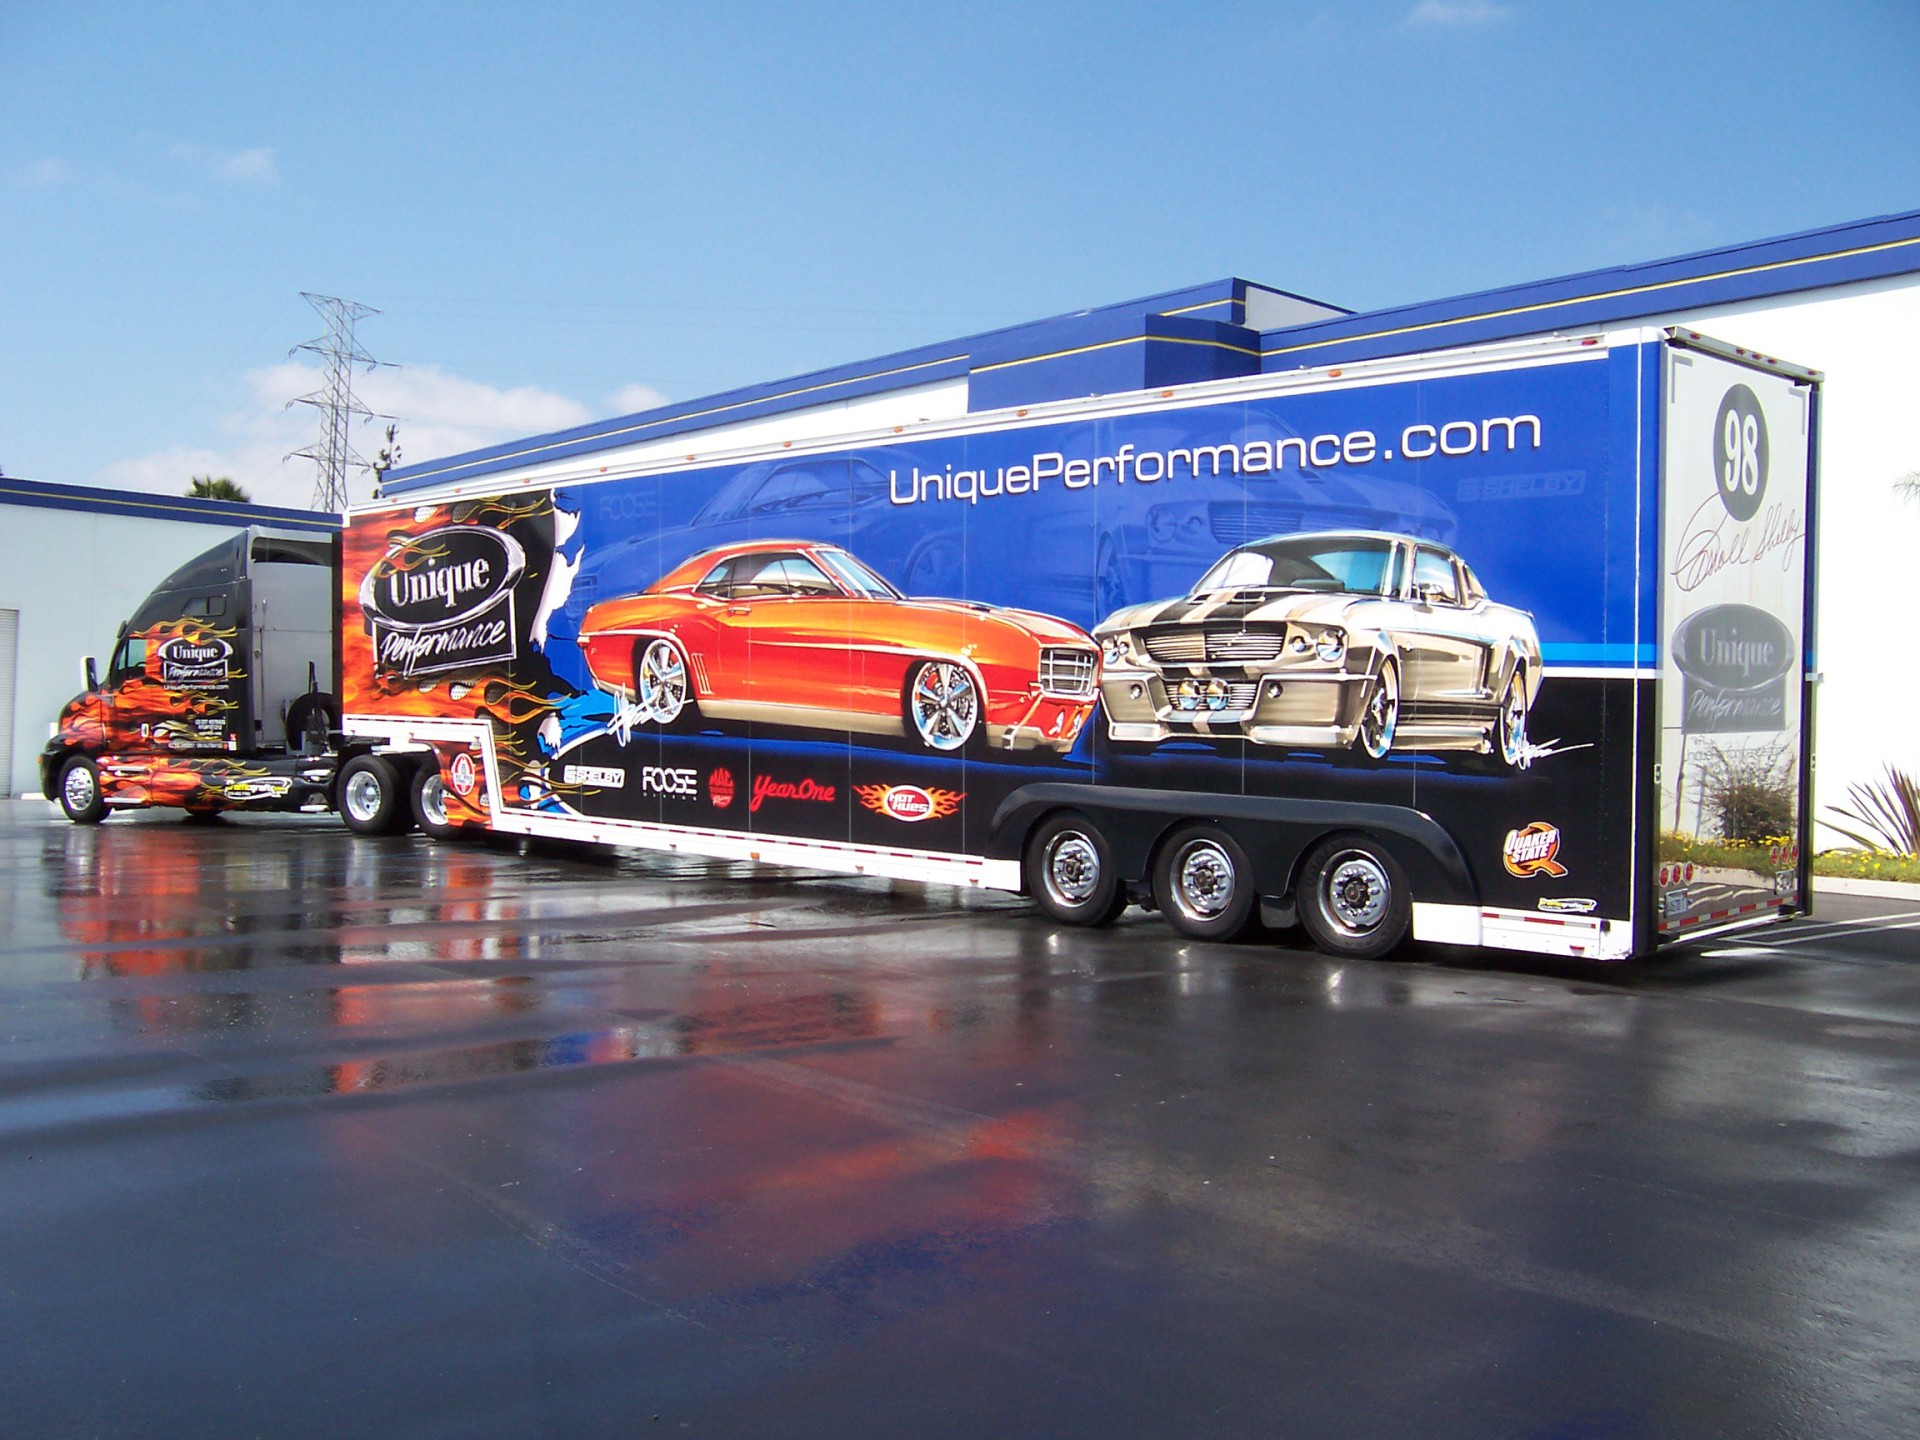 Trailer wrap Dallas Texas, Trailer wrap Ft Worth Texas, Best trailer wrap texas